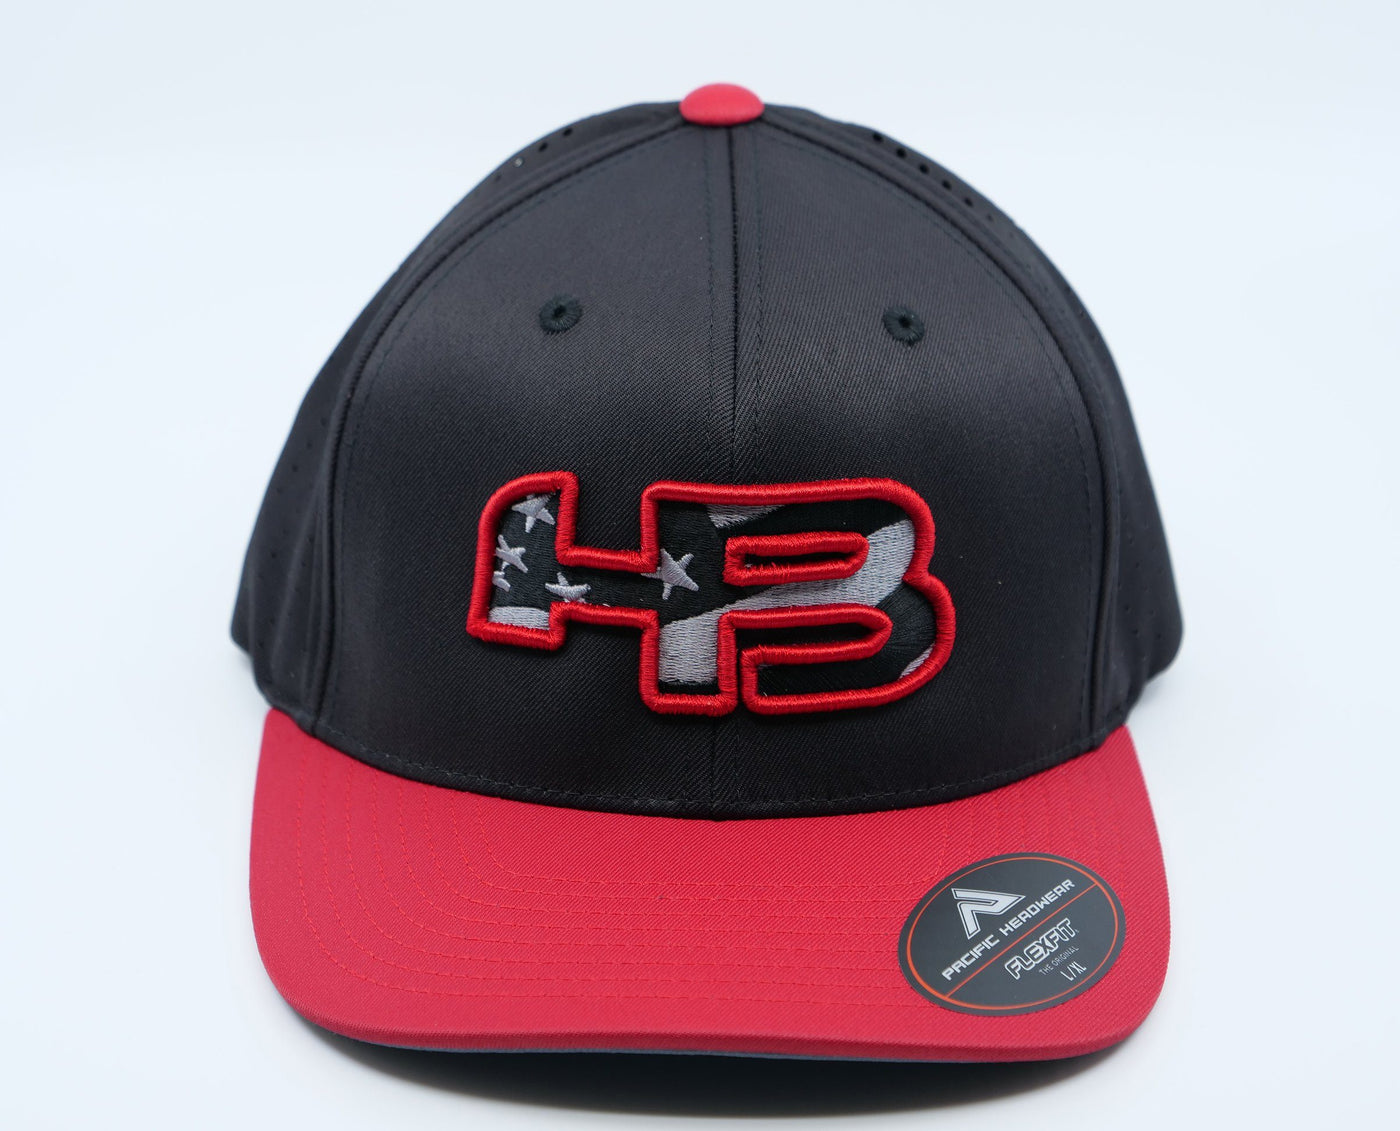 5414346d42341 HB Exclusve 474F F3 Performance Fitted Hat  Code Red